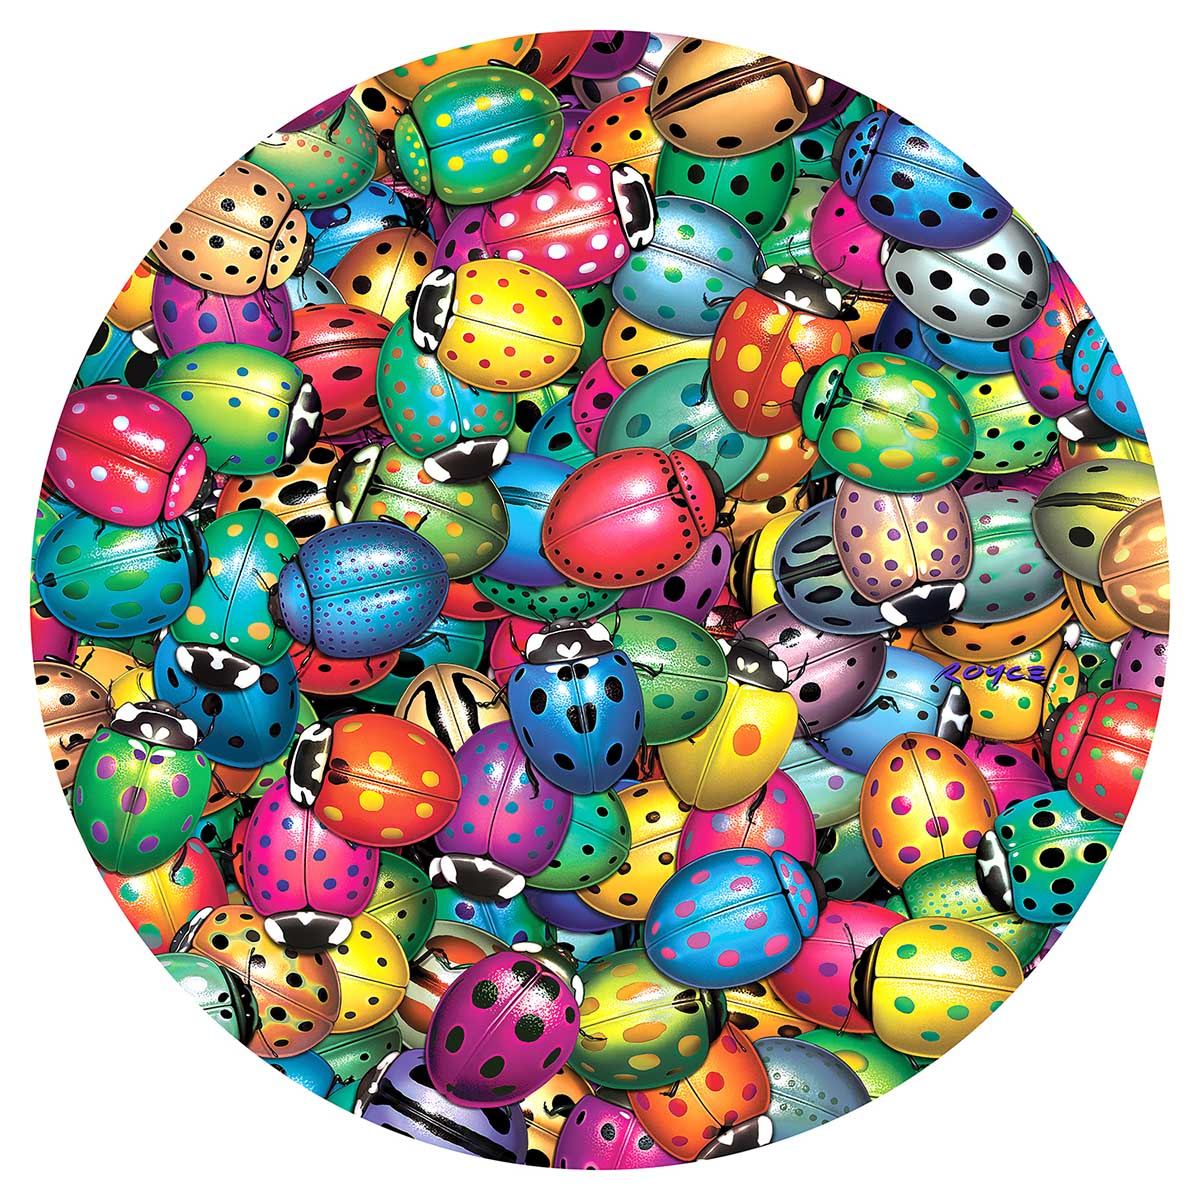 Beetlemania Butterflies and Insects Jigsaw Puzzle